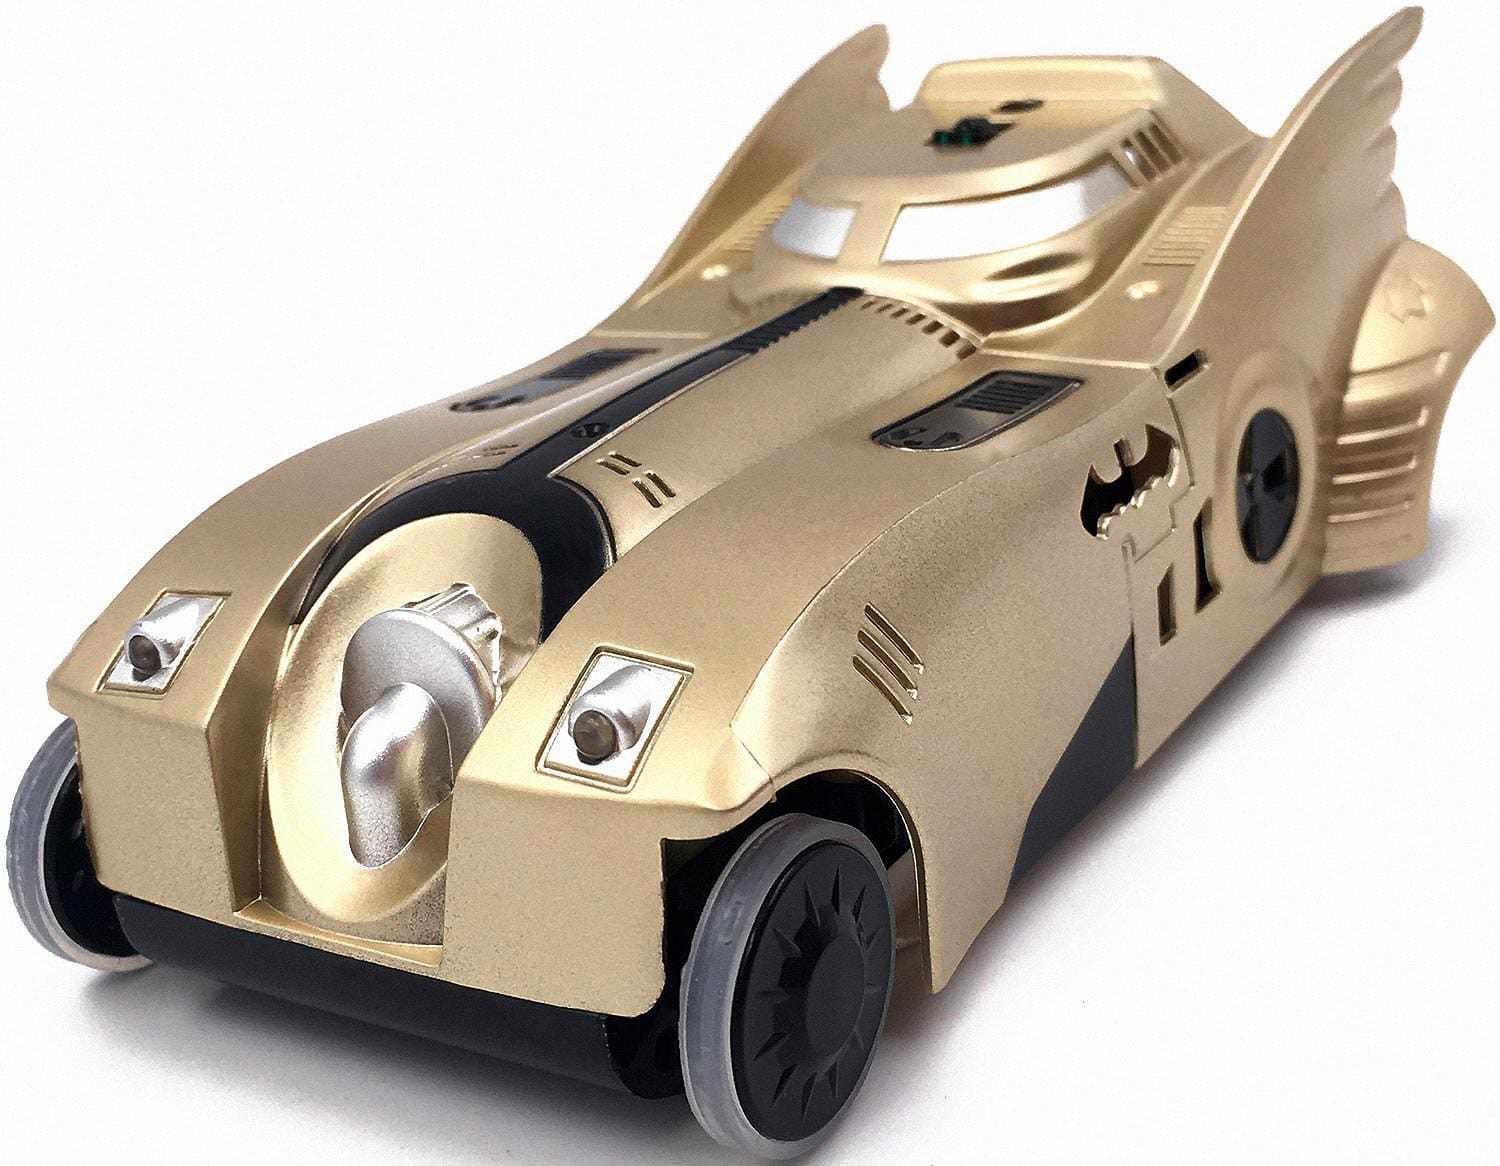 Wall Climbing Anti-Gravity Remote Control Car with Infrared Sensors $11.19 AC FS w/ Prime